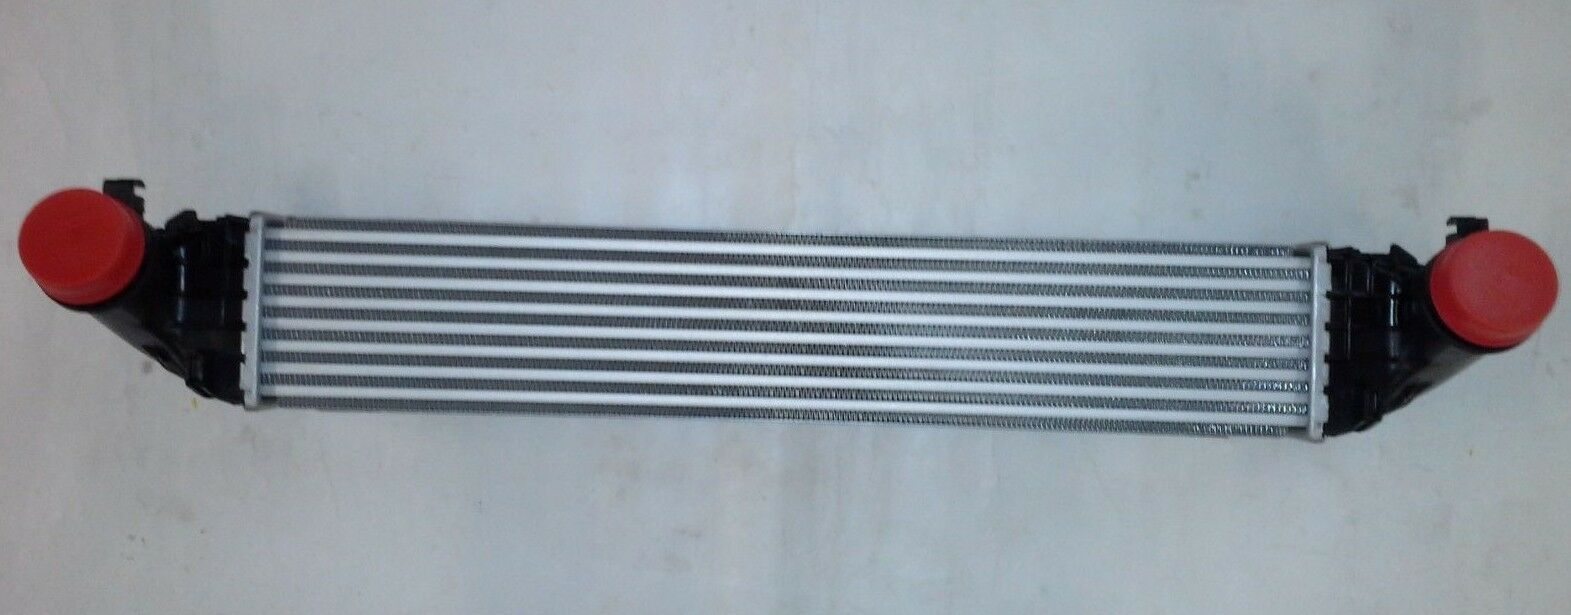 Vauxhall Astra K 1.4 Petrol Turbo Intercooler New OE Part 39185909 39109105*